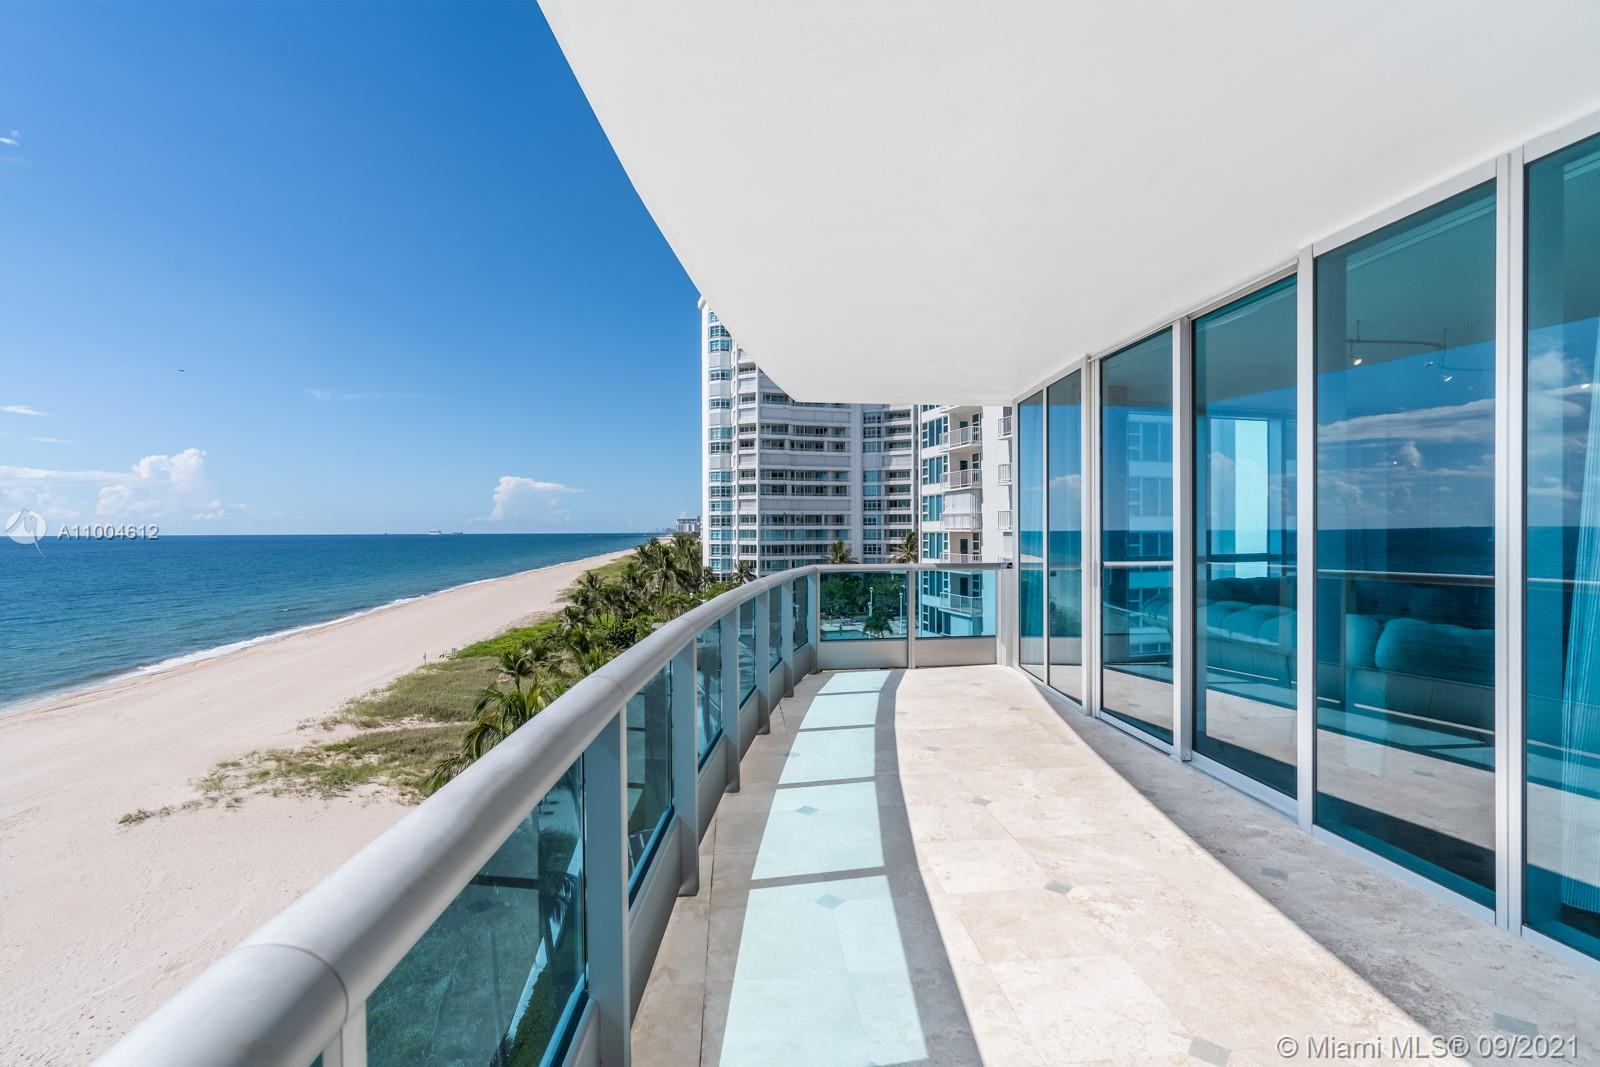 Located in one of the most sought-after addresses in Lauderdale By The Sea, this one-of-a-kind 5,100+ SF home defines custom elegance. Rise into this 5-bedroom, 5.5 bath combined double unit via semi private elevator, and get swept away by the stunning ocean views upon entry. Exquisite black marble floors and floor-to-ceiling windows accentuate the highly customized interior, with formal, informal, media, & dining spaces ideal for entertaining. Watch sunrise and sunset from any of the seven spacious terraces. From the wet bar to the built-in vanities, every detail is bespoke, including two master closets & a master bathroom tub overlooking the ocean. Additional amenities include private beach access w/ beach attendants, resort pool & fitness center, tennis courts, dog run, 24/7 concierge.